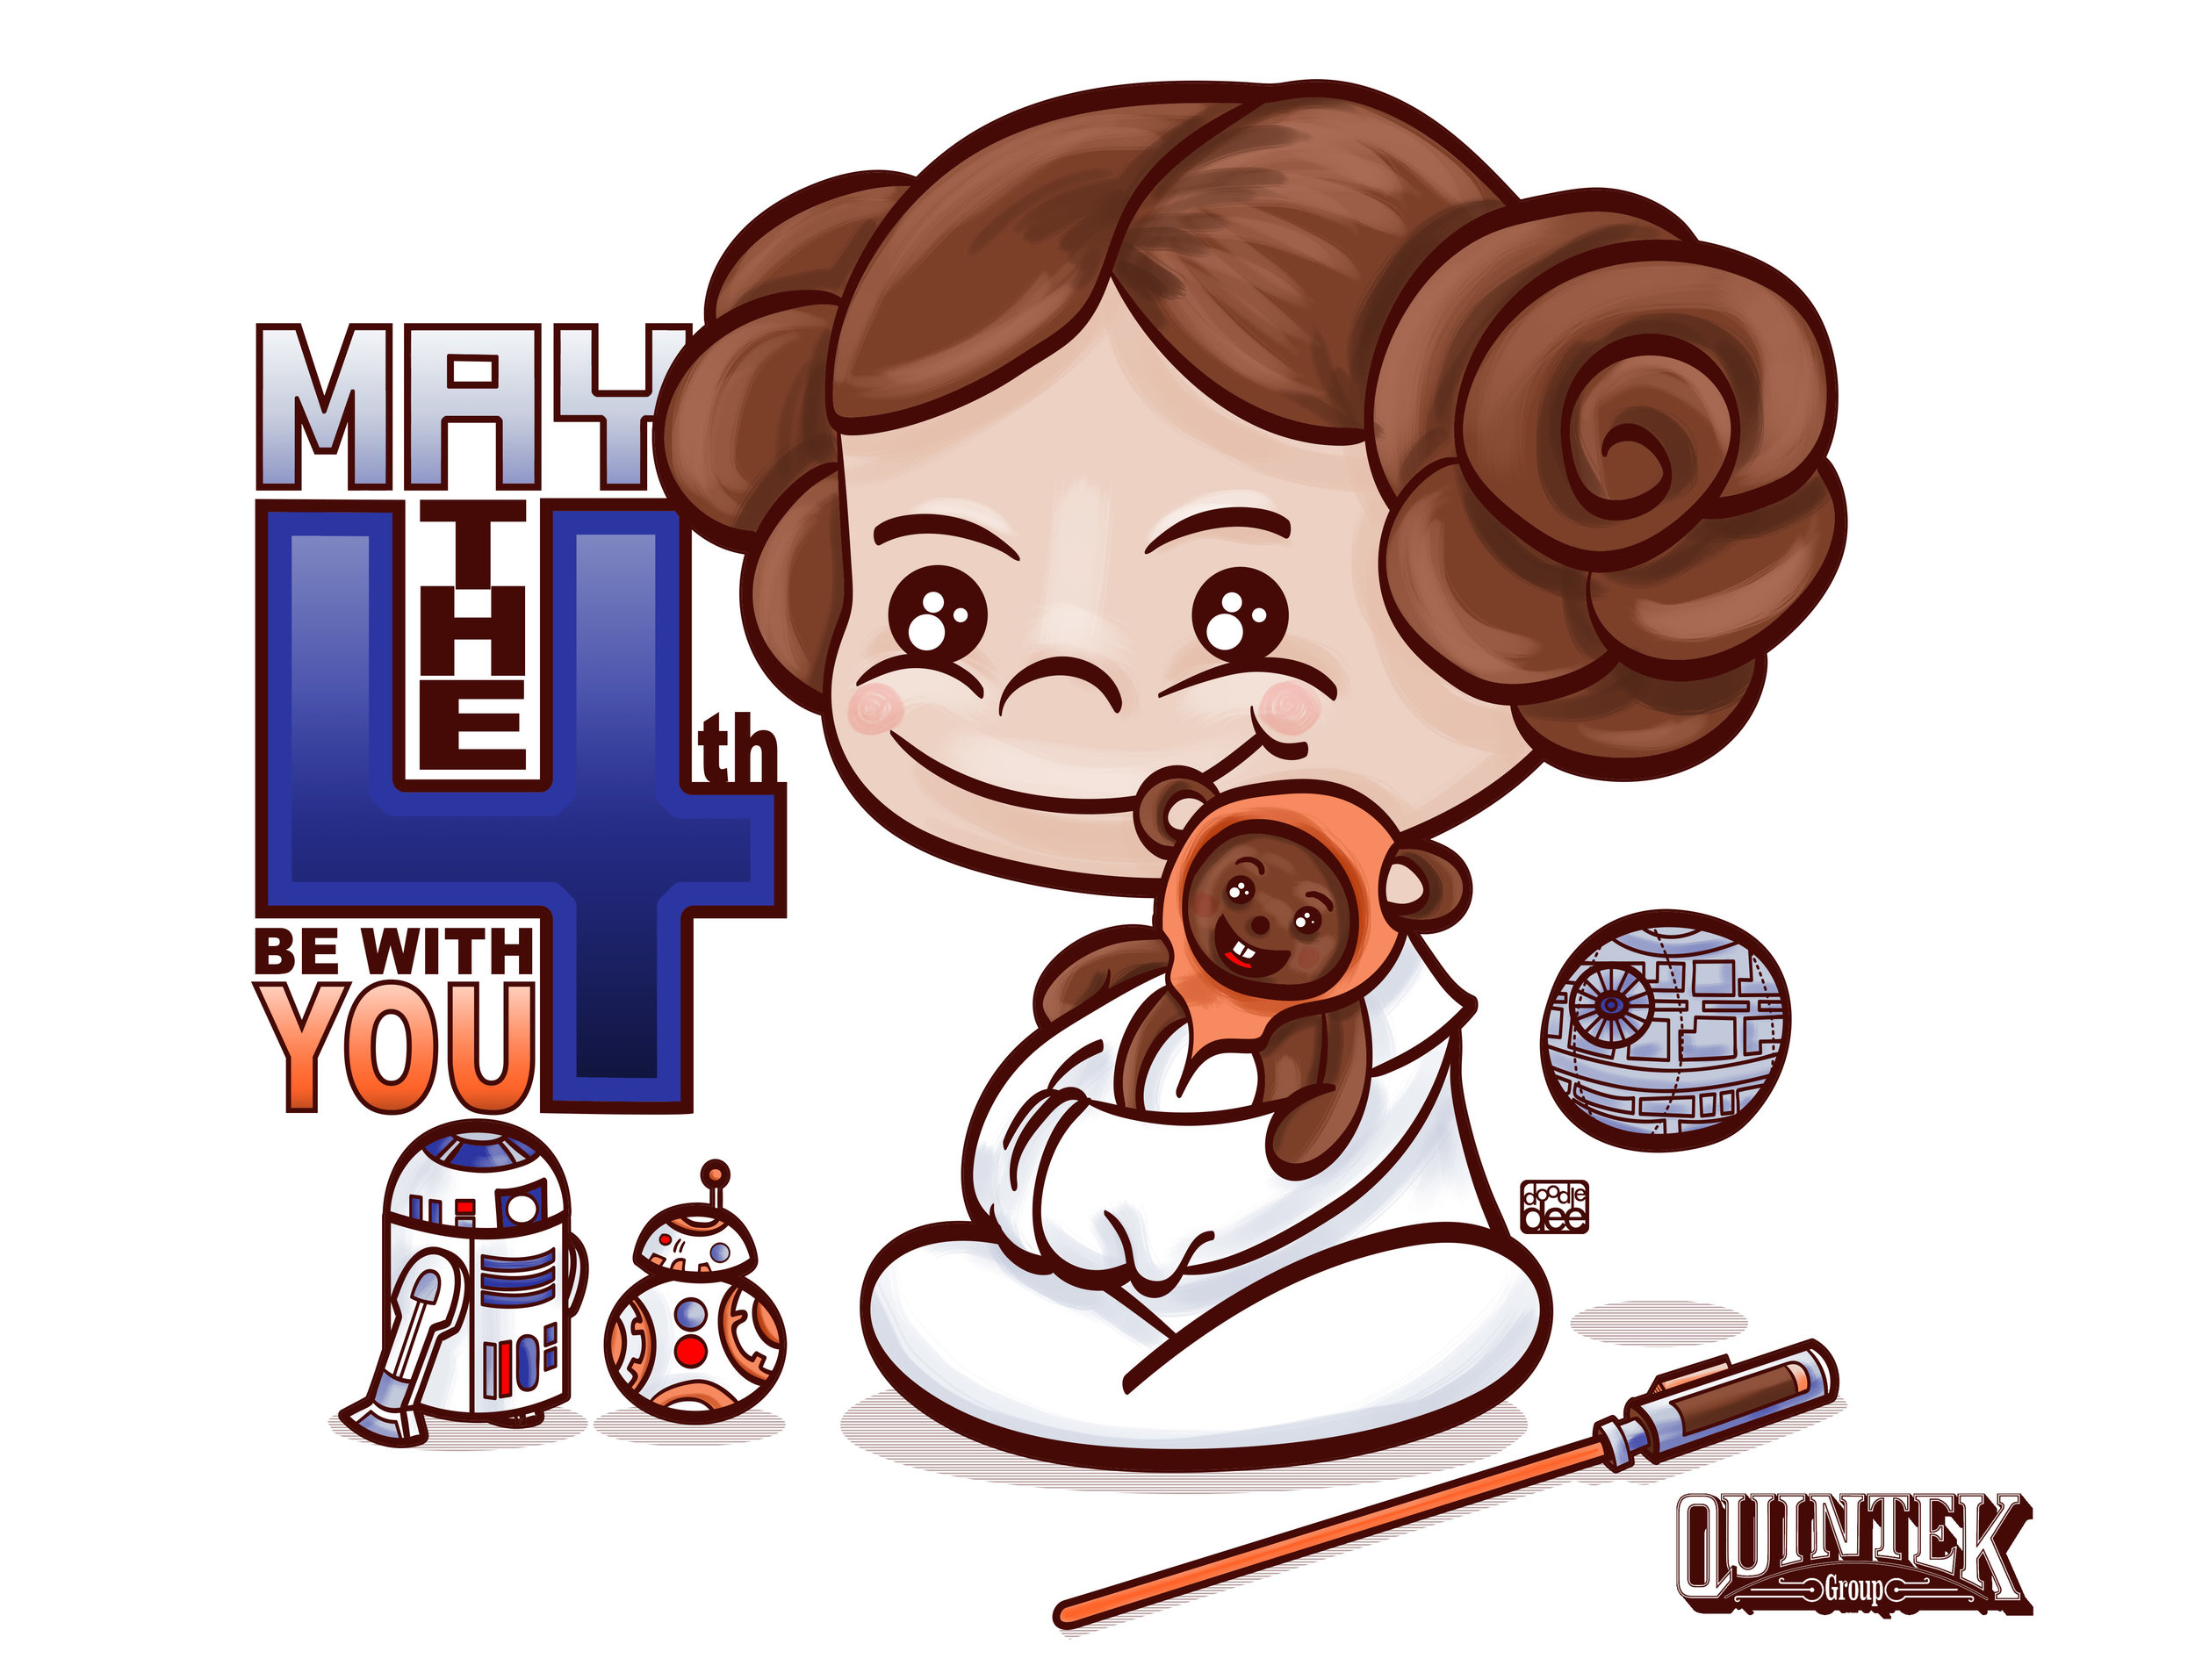 LittleLeia_May4th.jpg